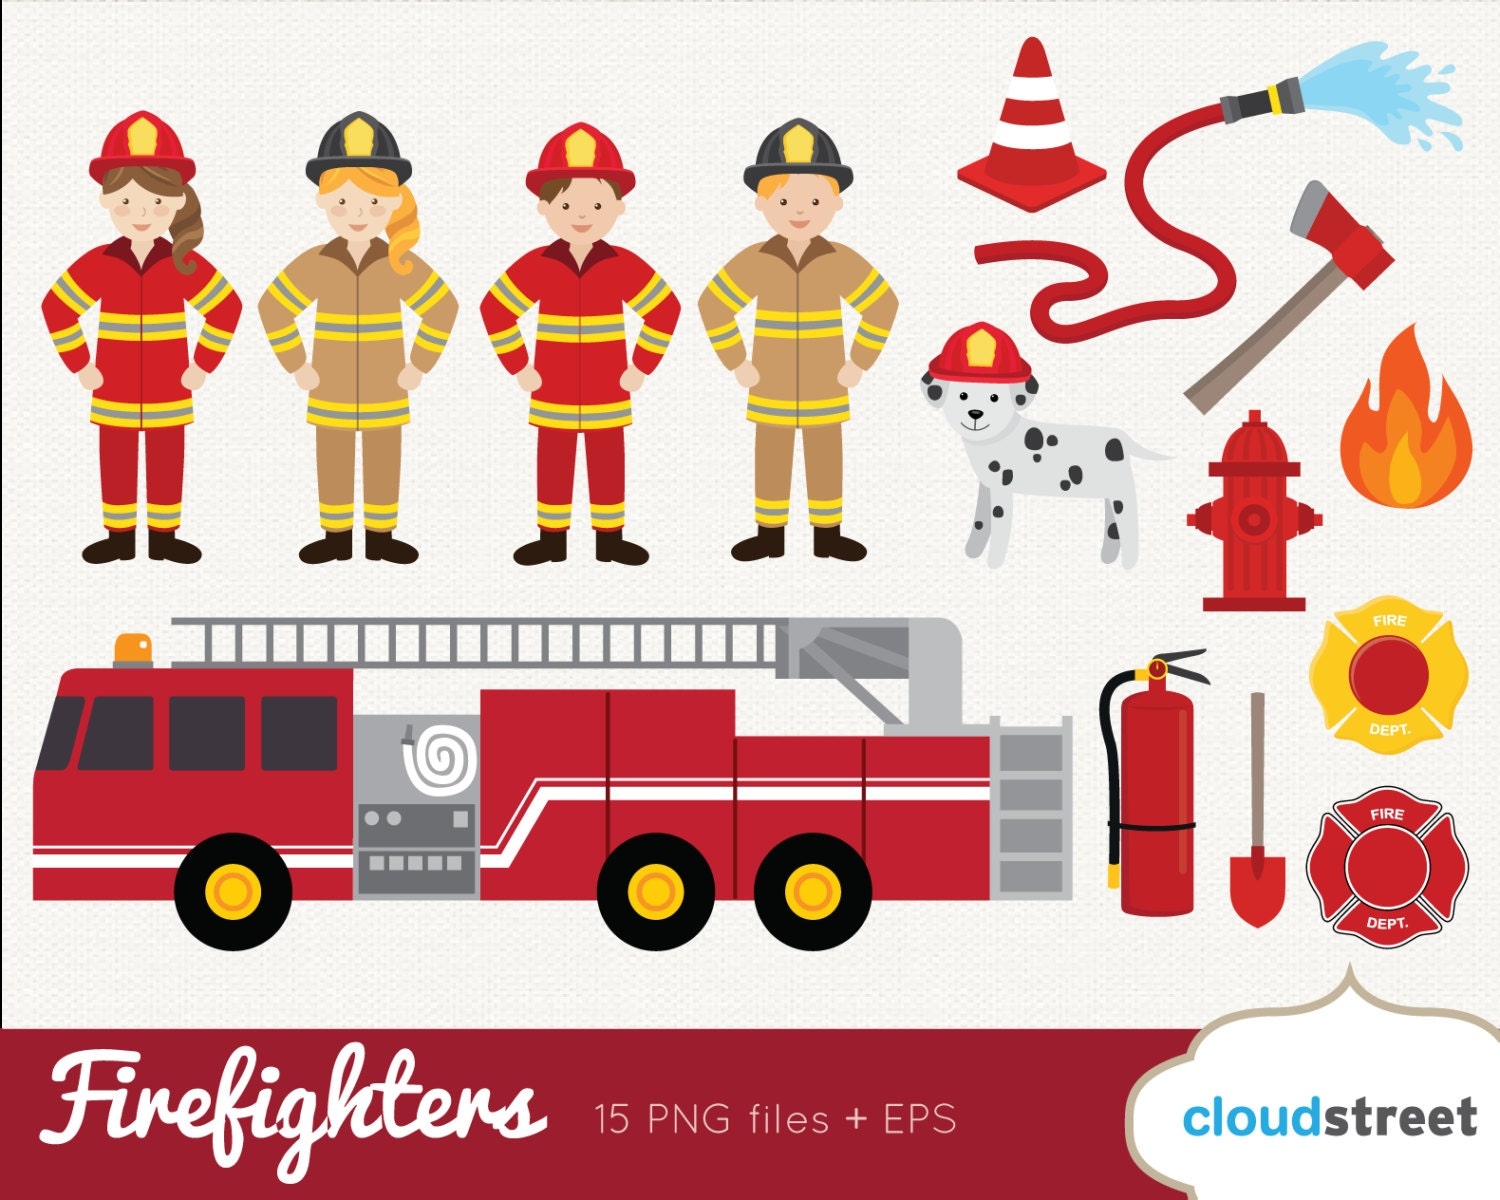 buy 2 get 1 free firefighter clipart firefighter clip art rh etsy com firefighter tools clipart firefighter tools clipart